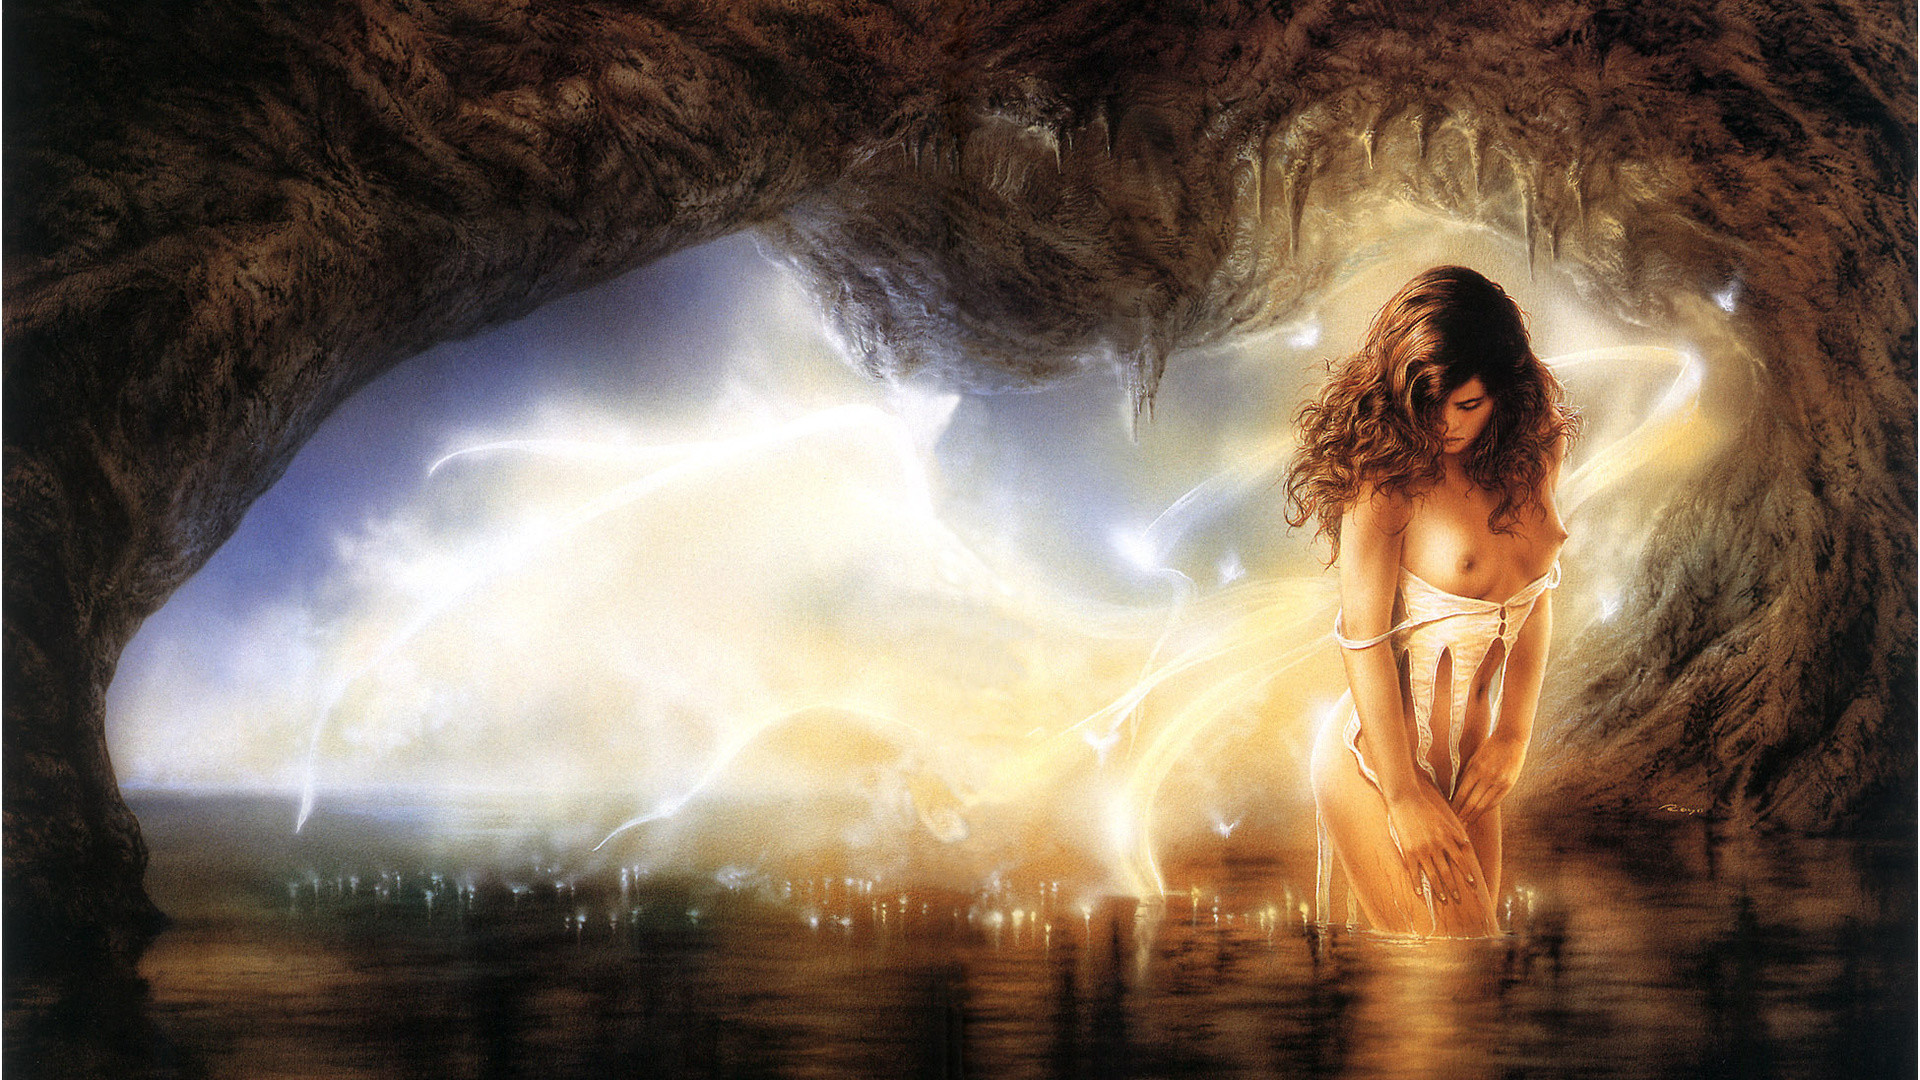 Res: 1920x1080, Thread, Luis Royo, Girl, Fireflies, Threads Of Desire, Cave, Cave